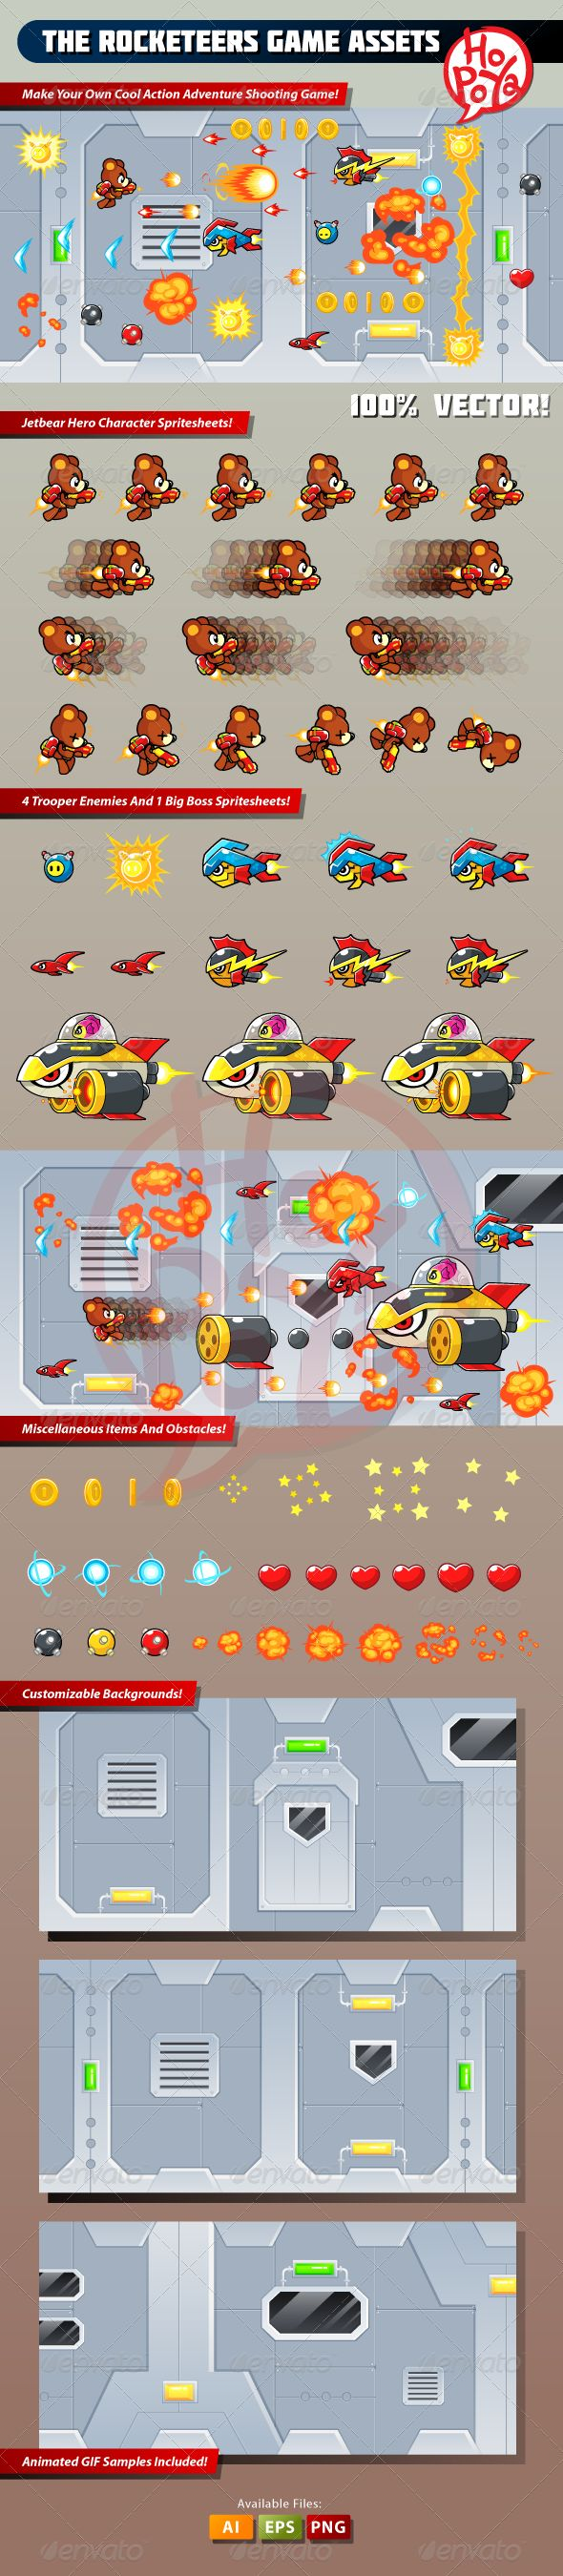 The Rocketeers Game Assets - Sprites Game Assets | DOWNLOAD: https://graphicriver.net/item/the-rocketeers-game-assets/7764101?ref=sinzo